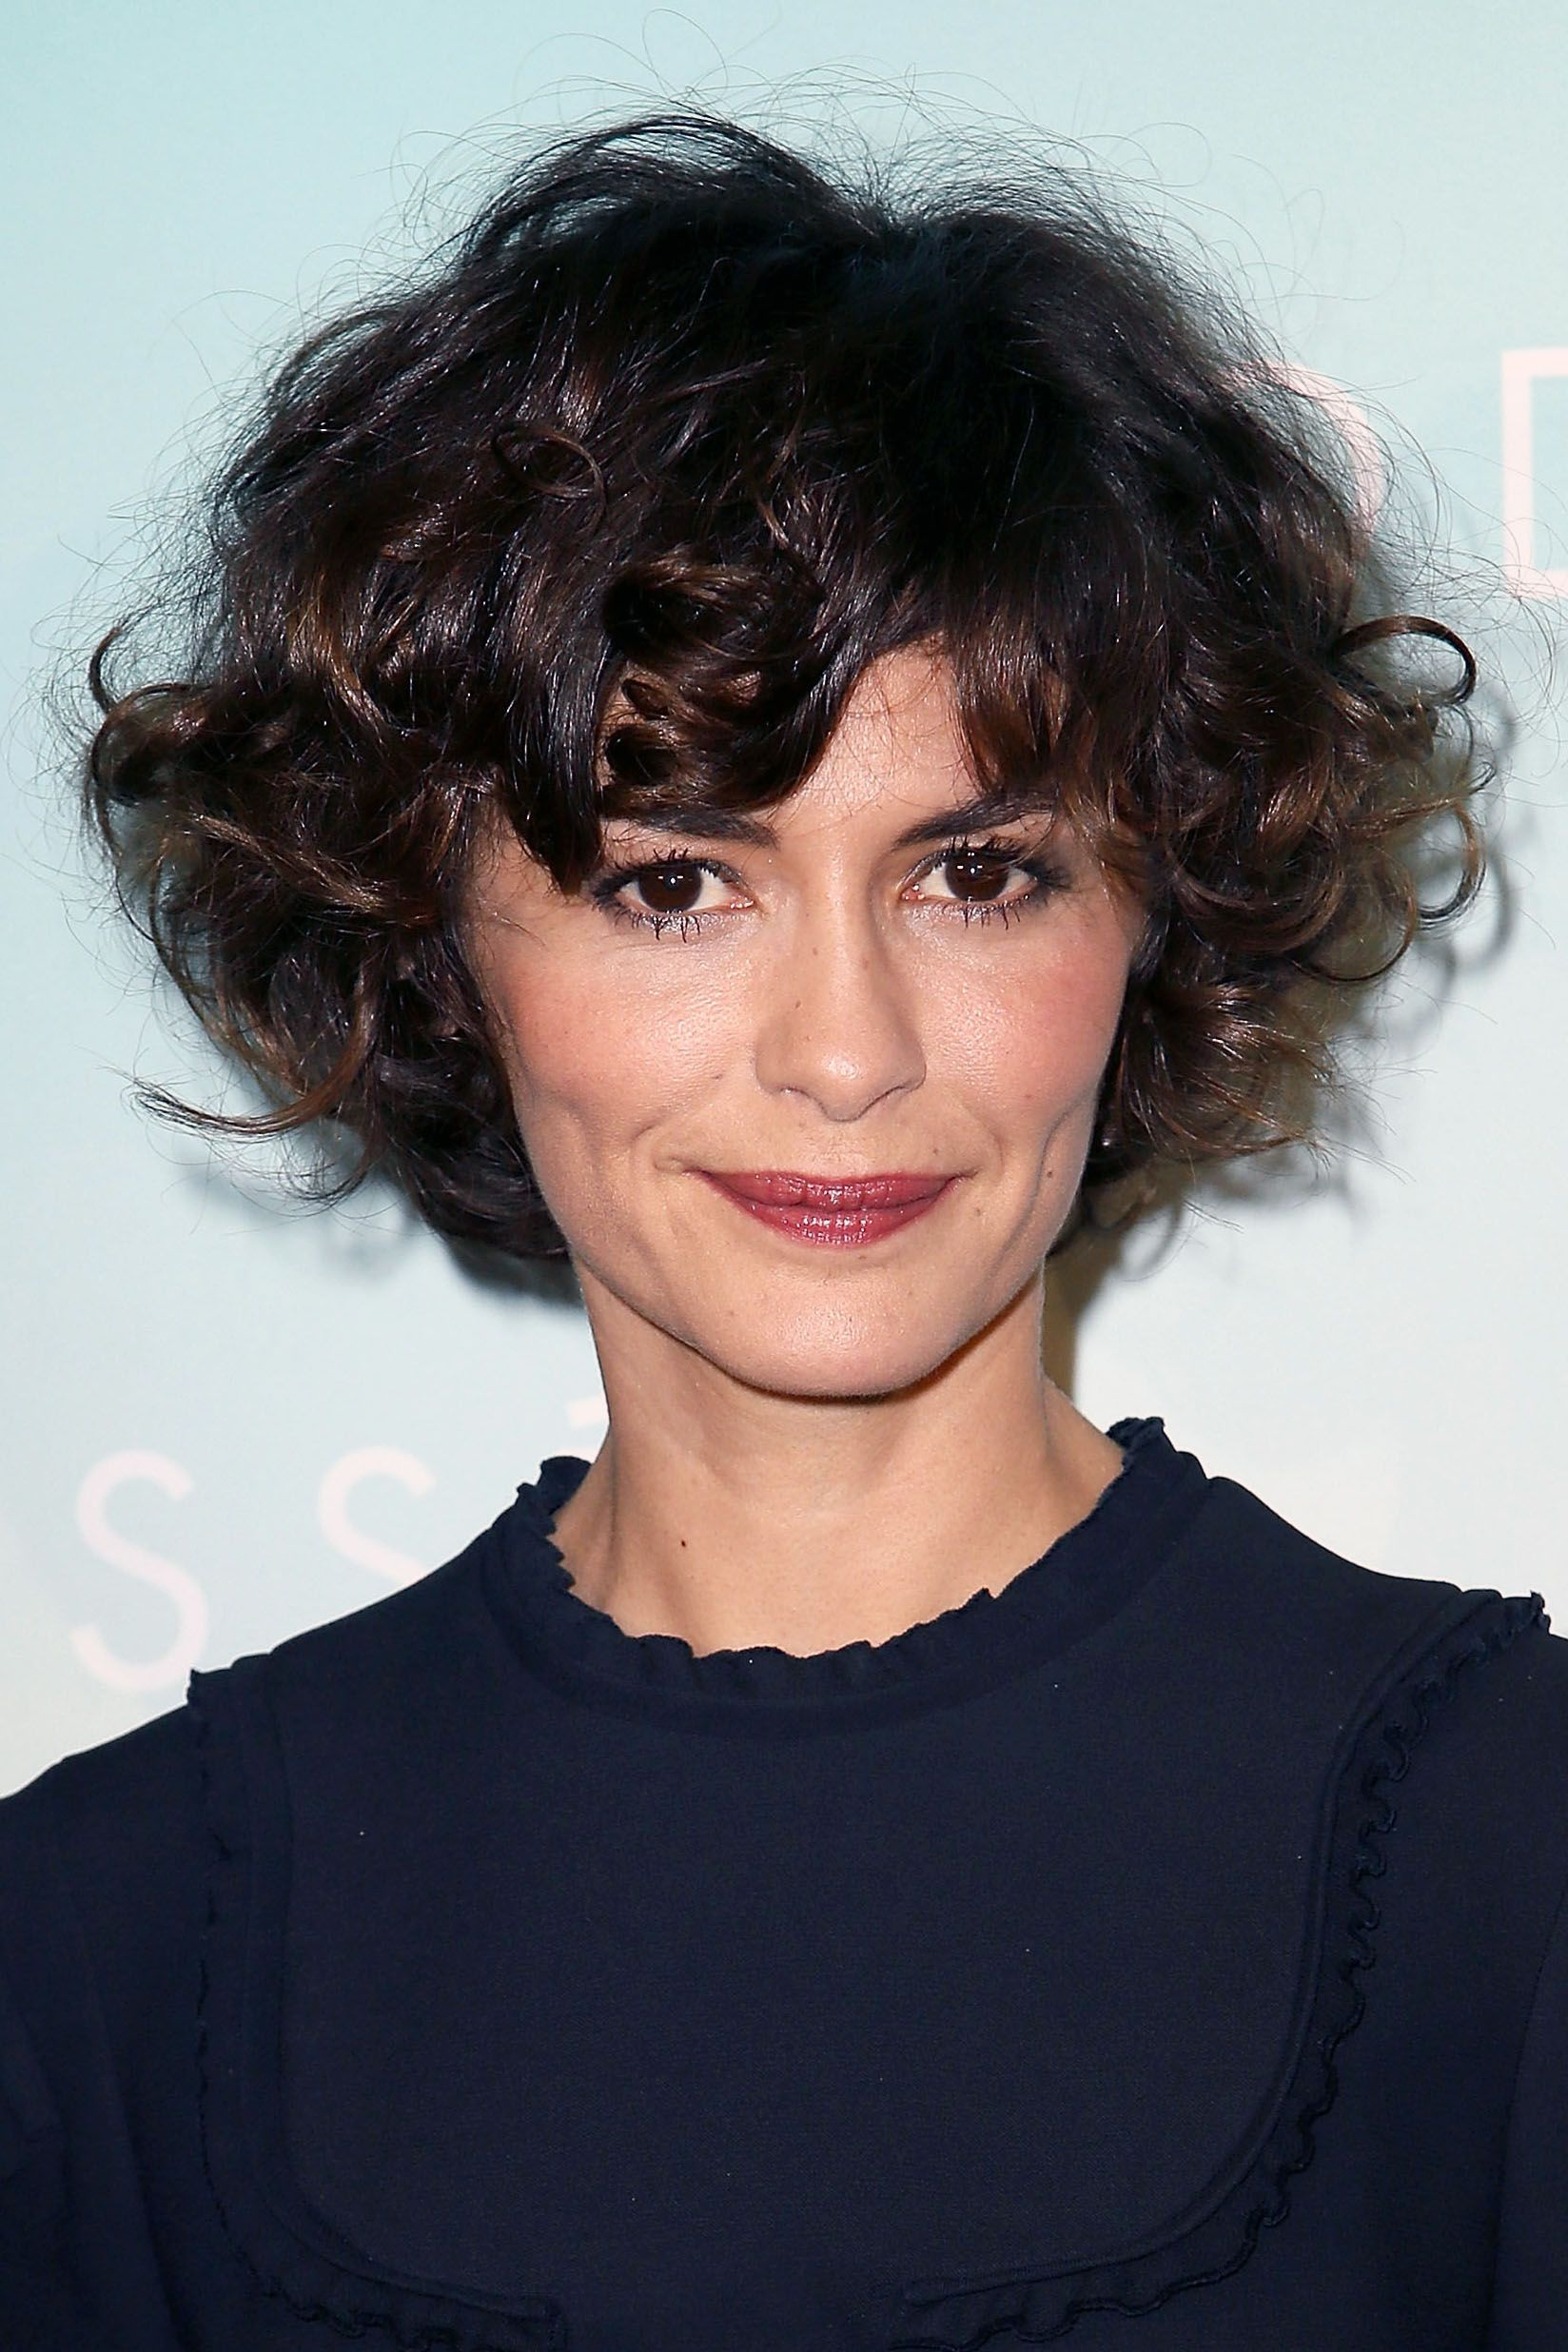 20 Celebrity Short Curly Hair Ideas Short Haircuts And Hairstyles